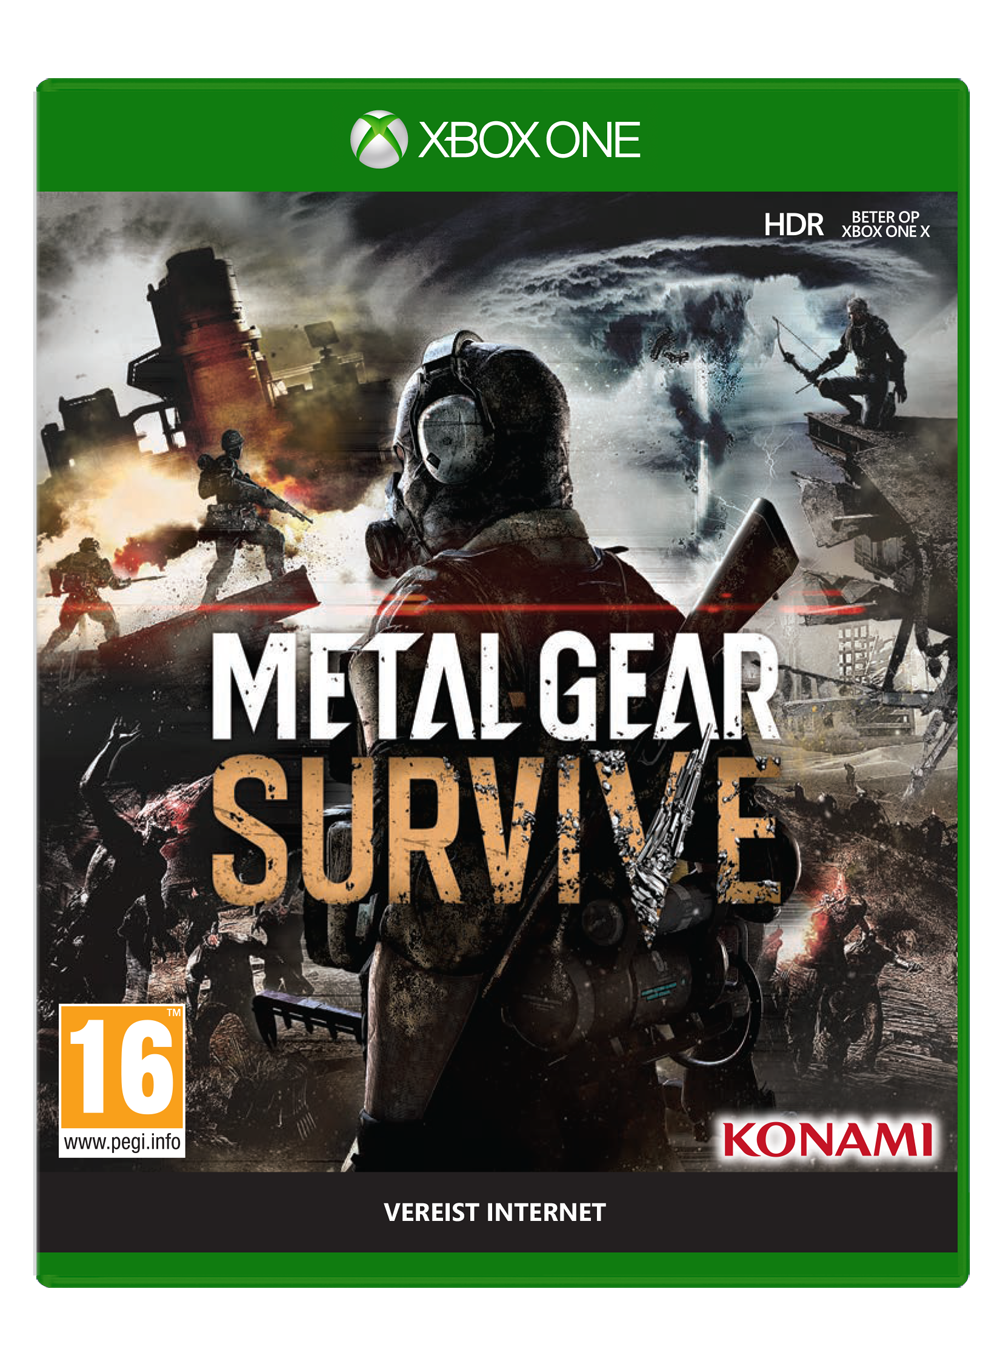 Metal-Gear-Survive-Xbox-One-Box-NL.png